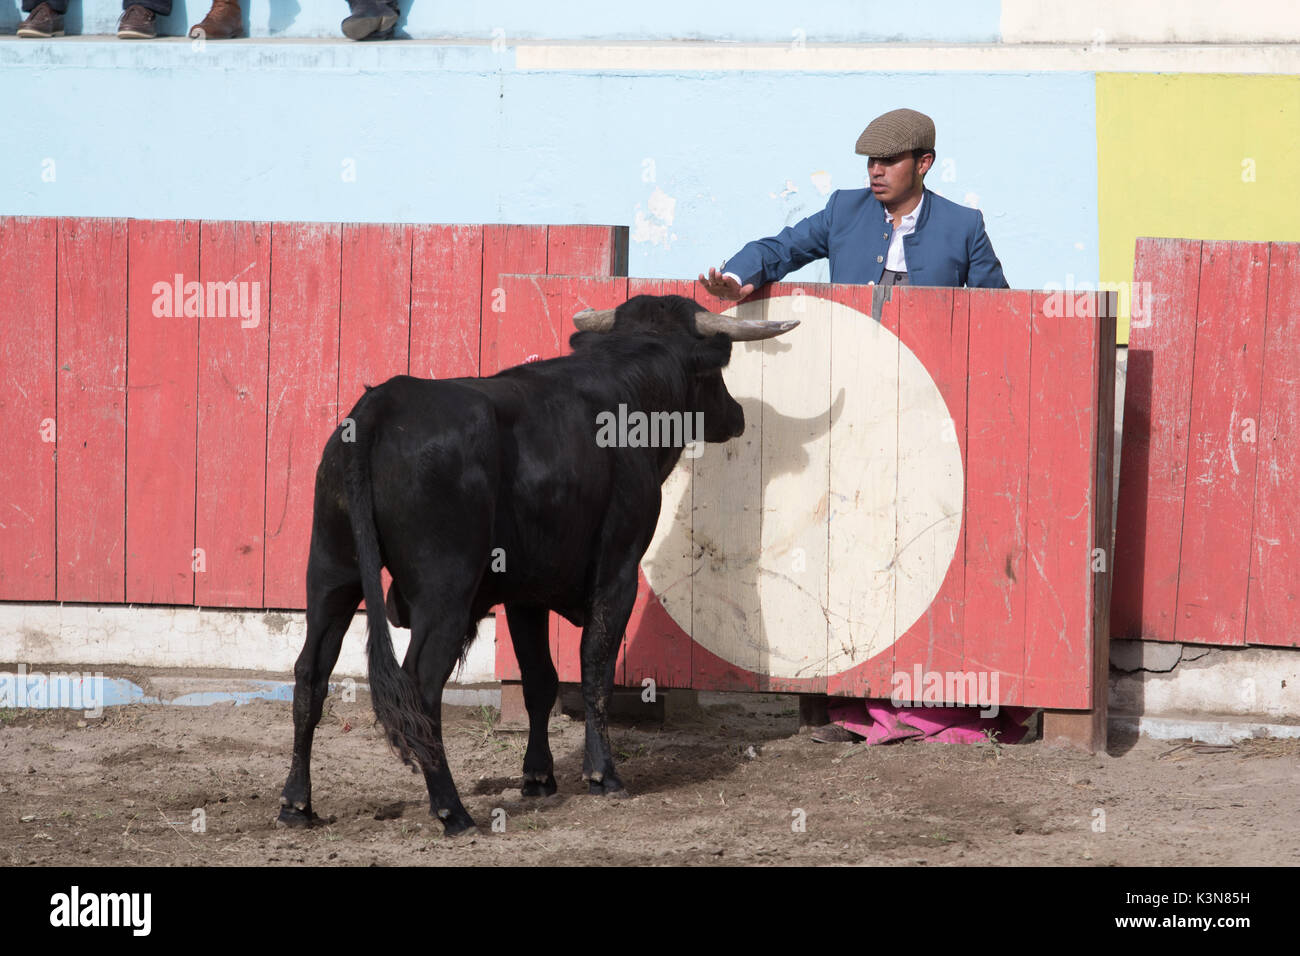 June 18, 2017 Pujili, Ecuador: picador behind protecting fence holds palm out towards the bull - Stock Image